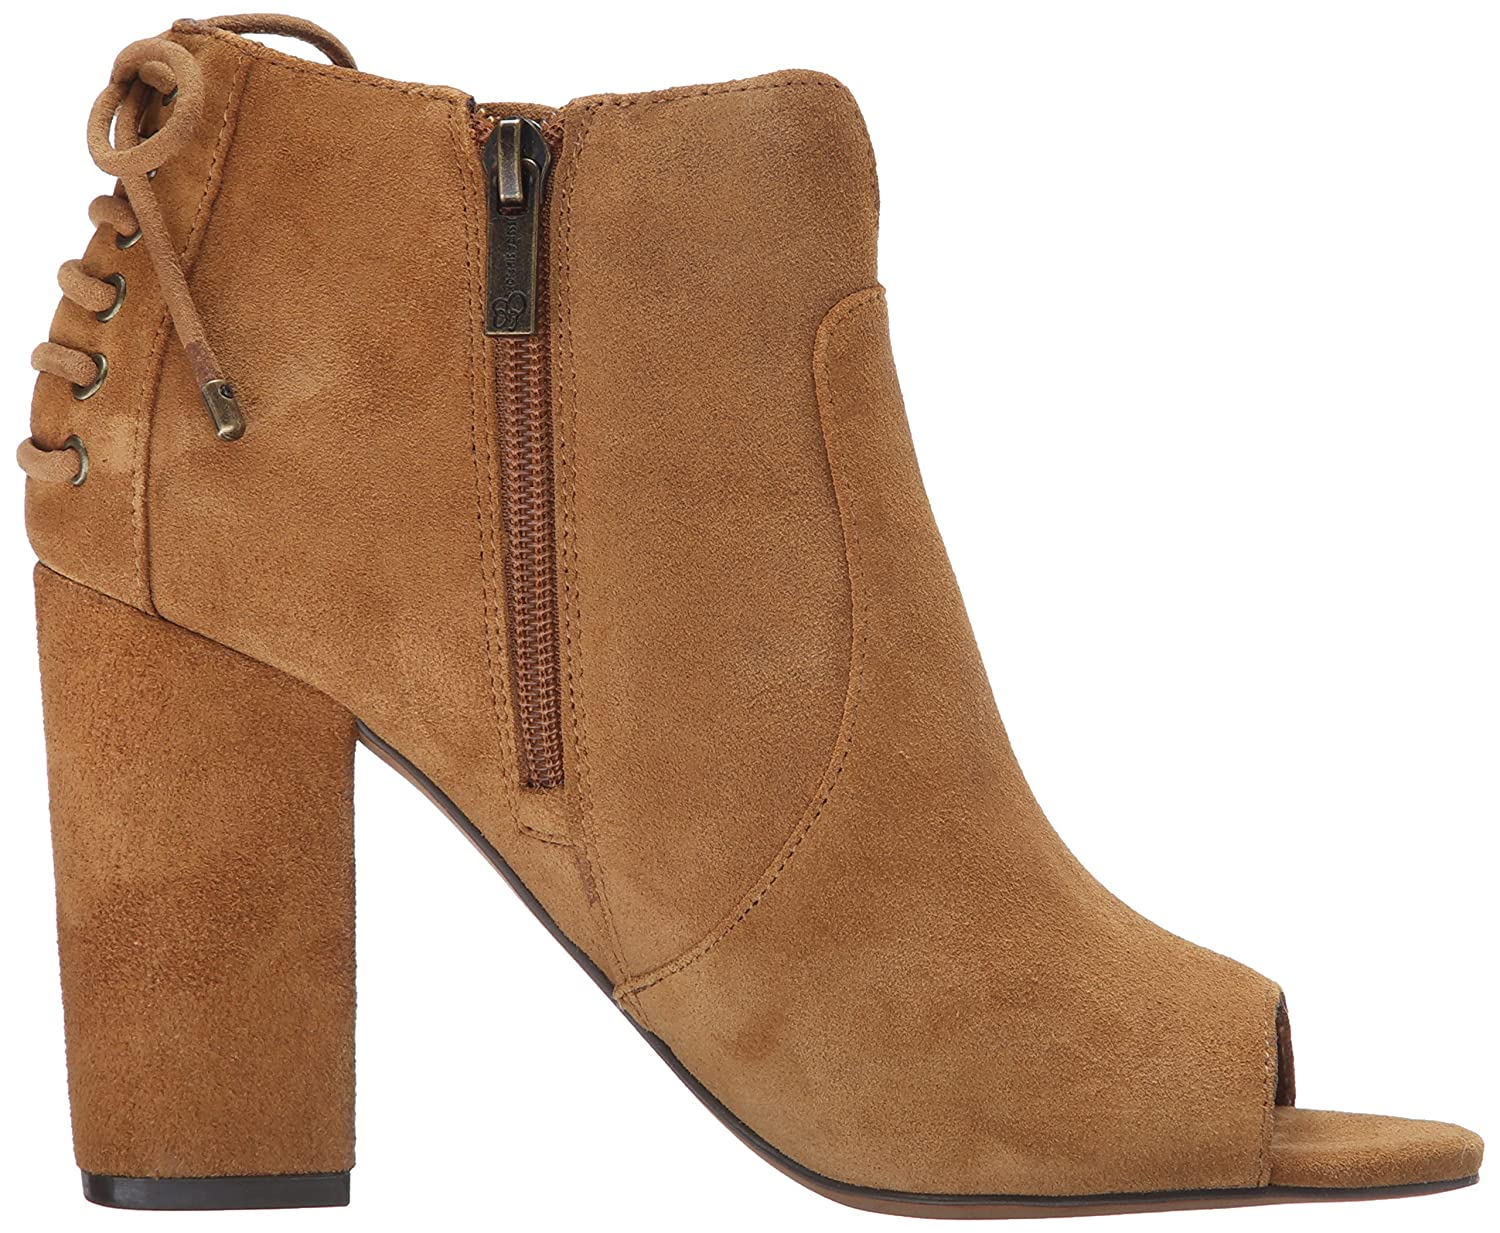 Jessica Simpson Women's B(M) Korissa Boot B01DMWI1VC 8.5 B(M) Women's US|Honey Brown c98052